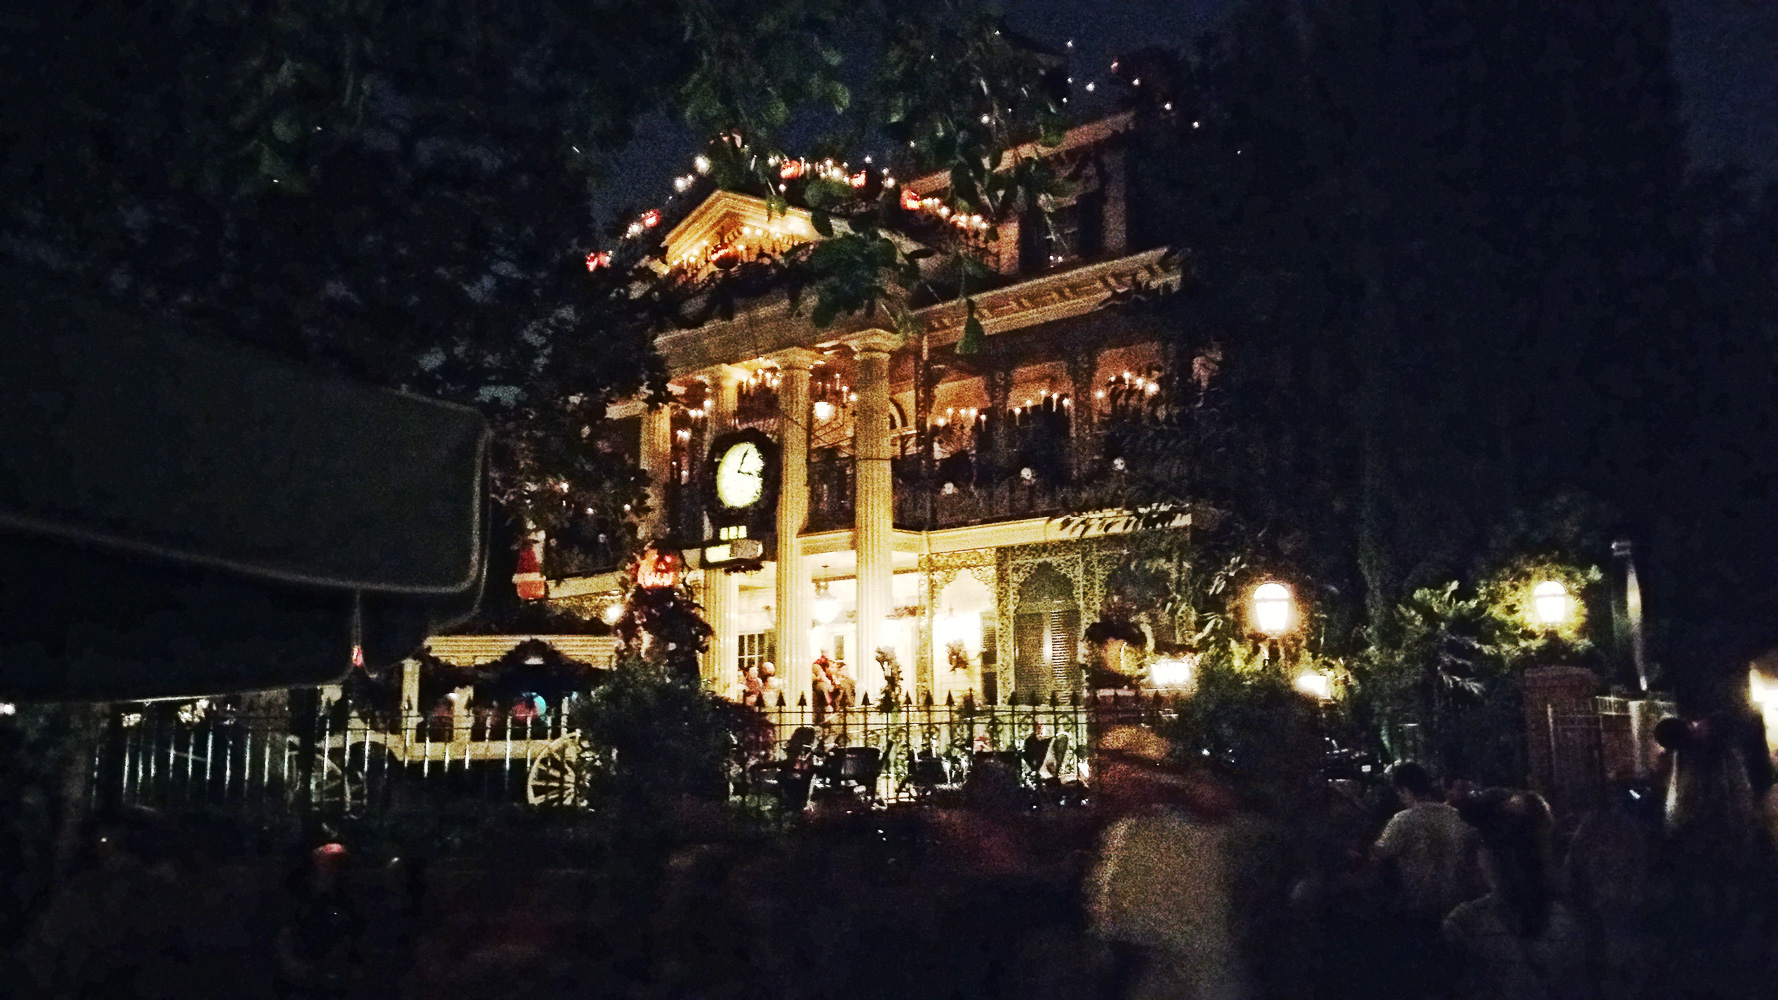 Haunted Mansion ride at night. We ere there in October and it was already decorated for the Nightmare before Christmas theme